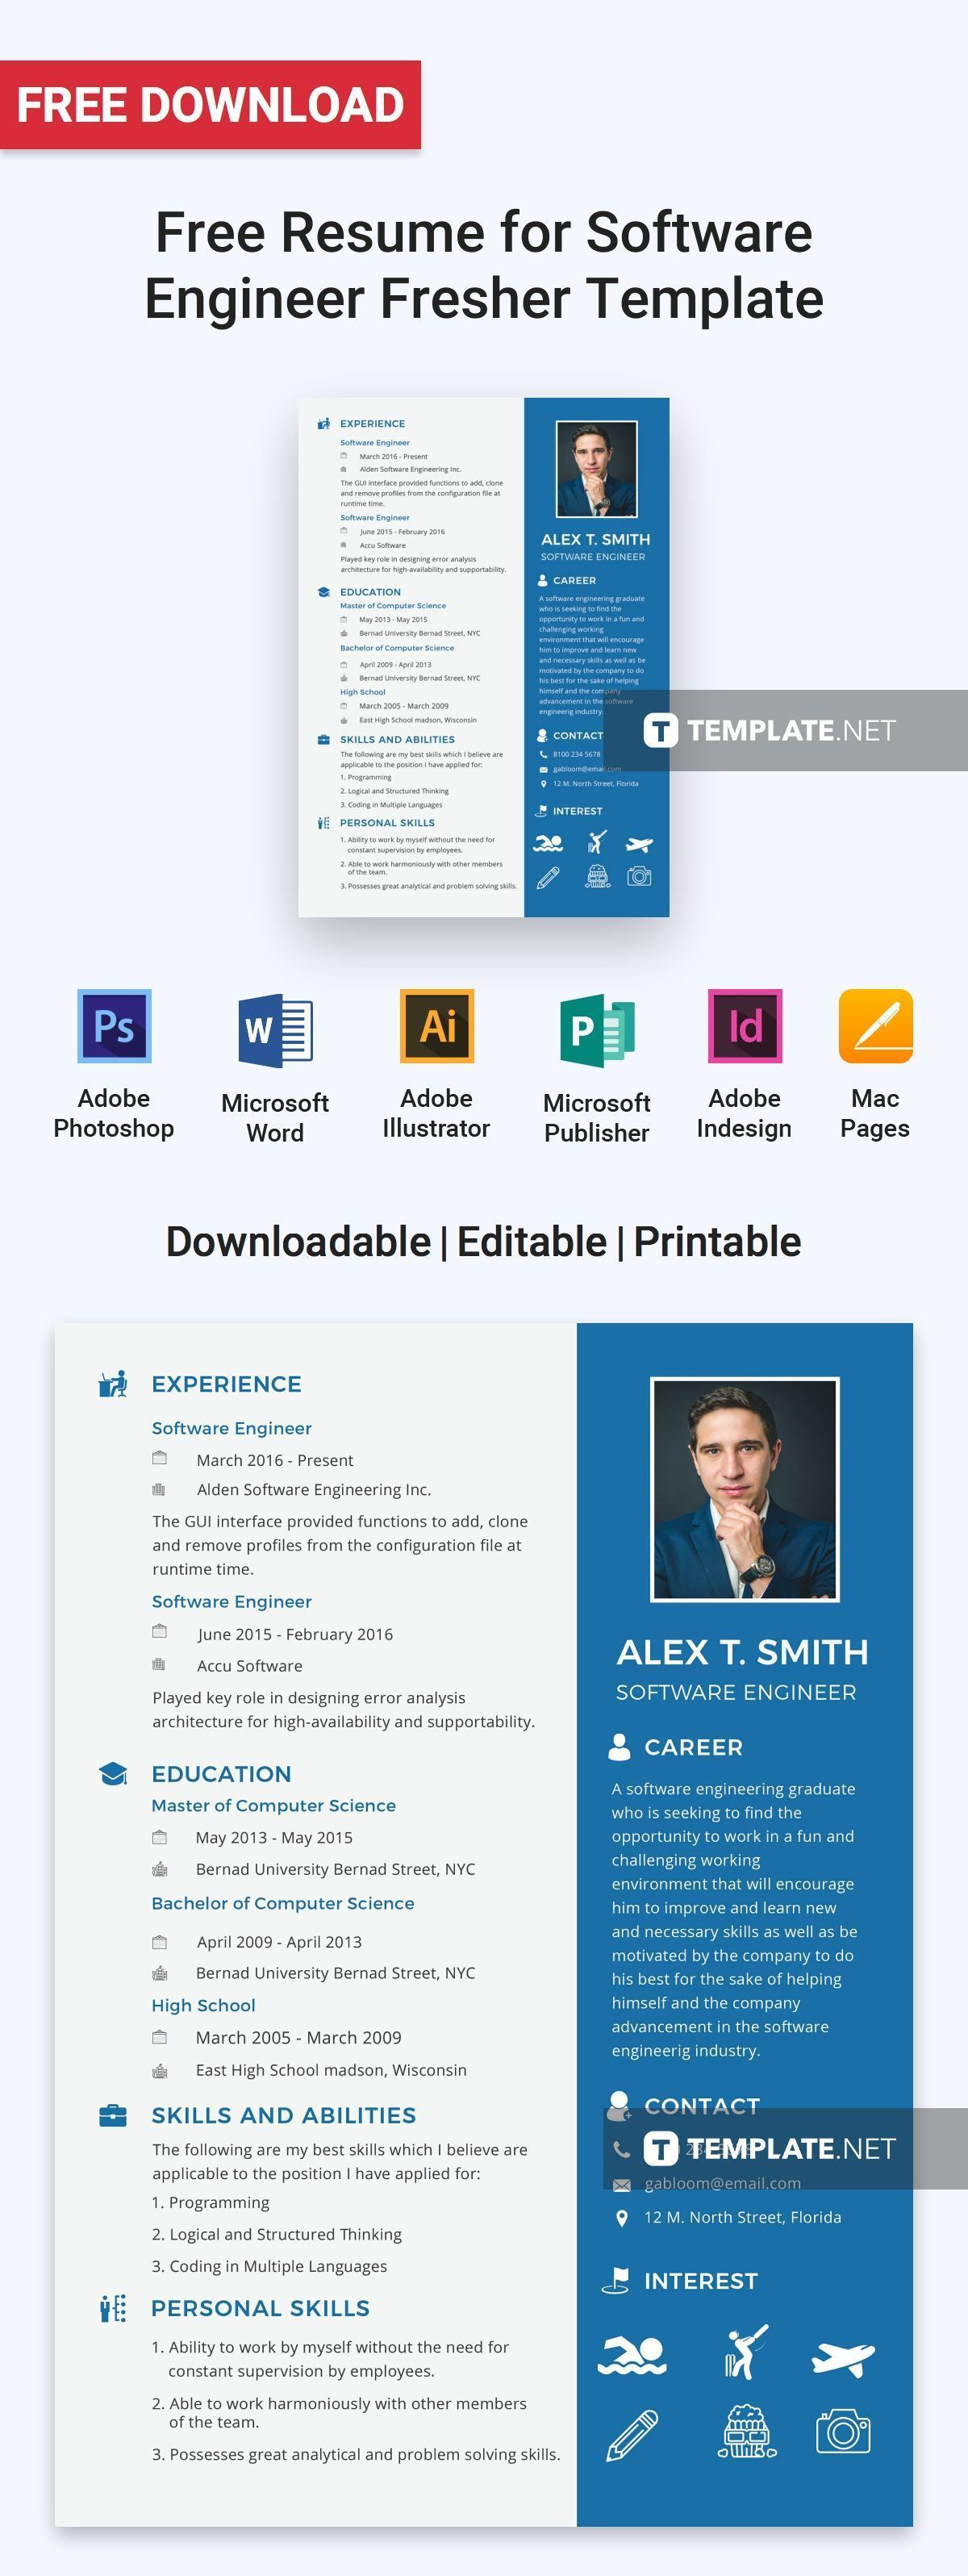 Free Resume for Software Engineer Fresher Software